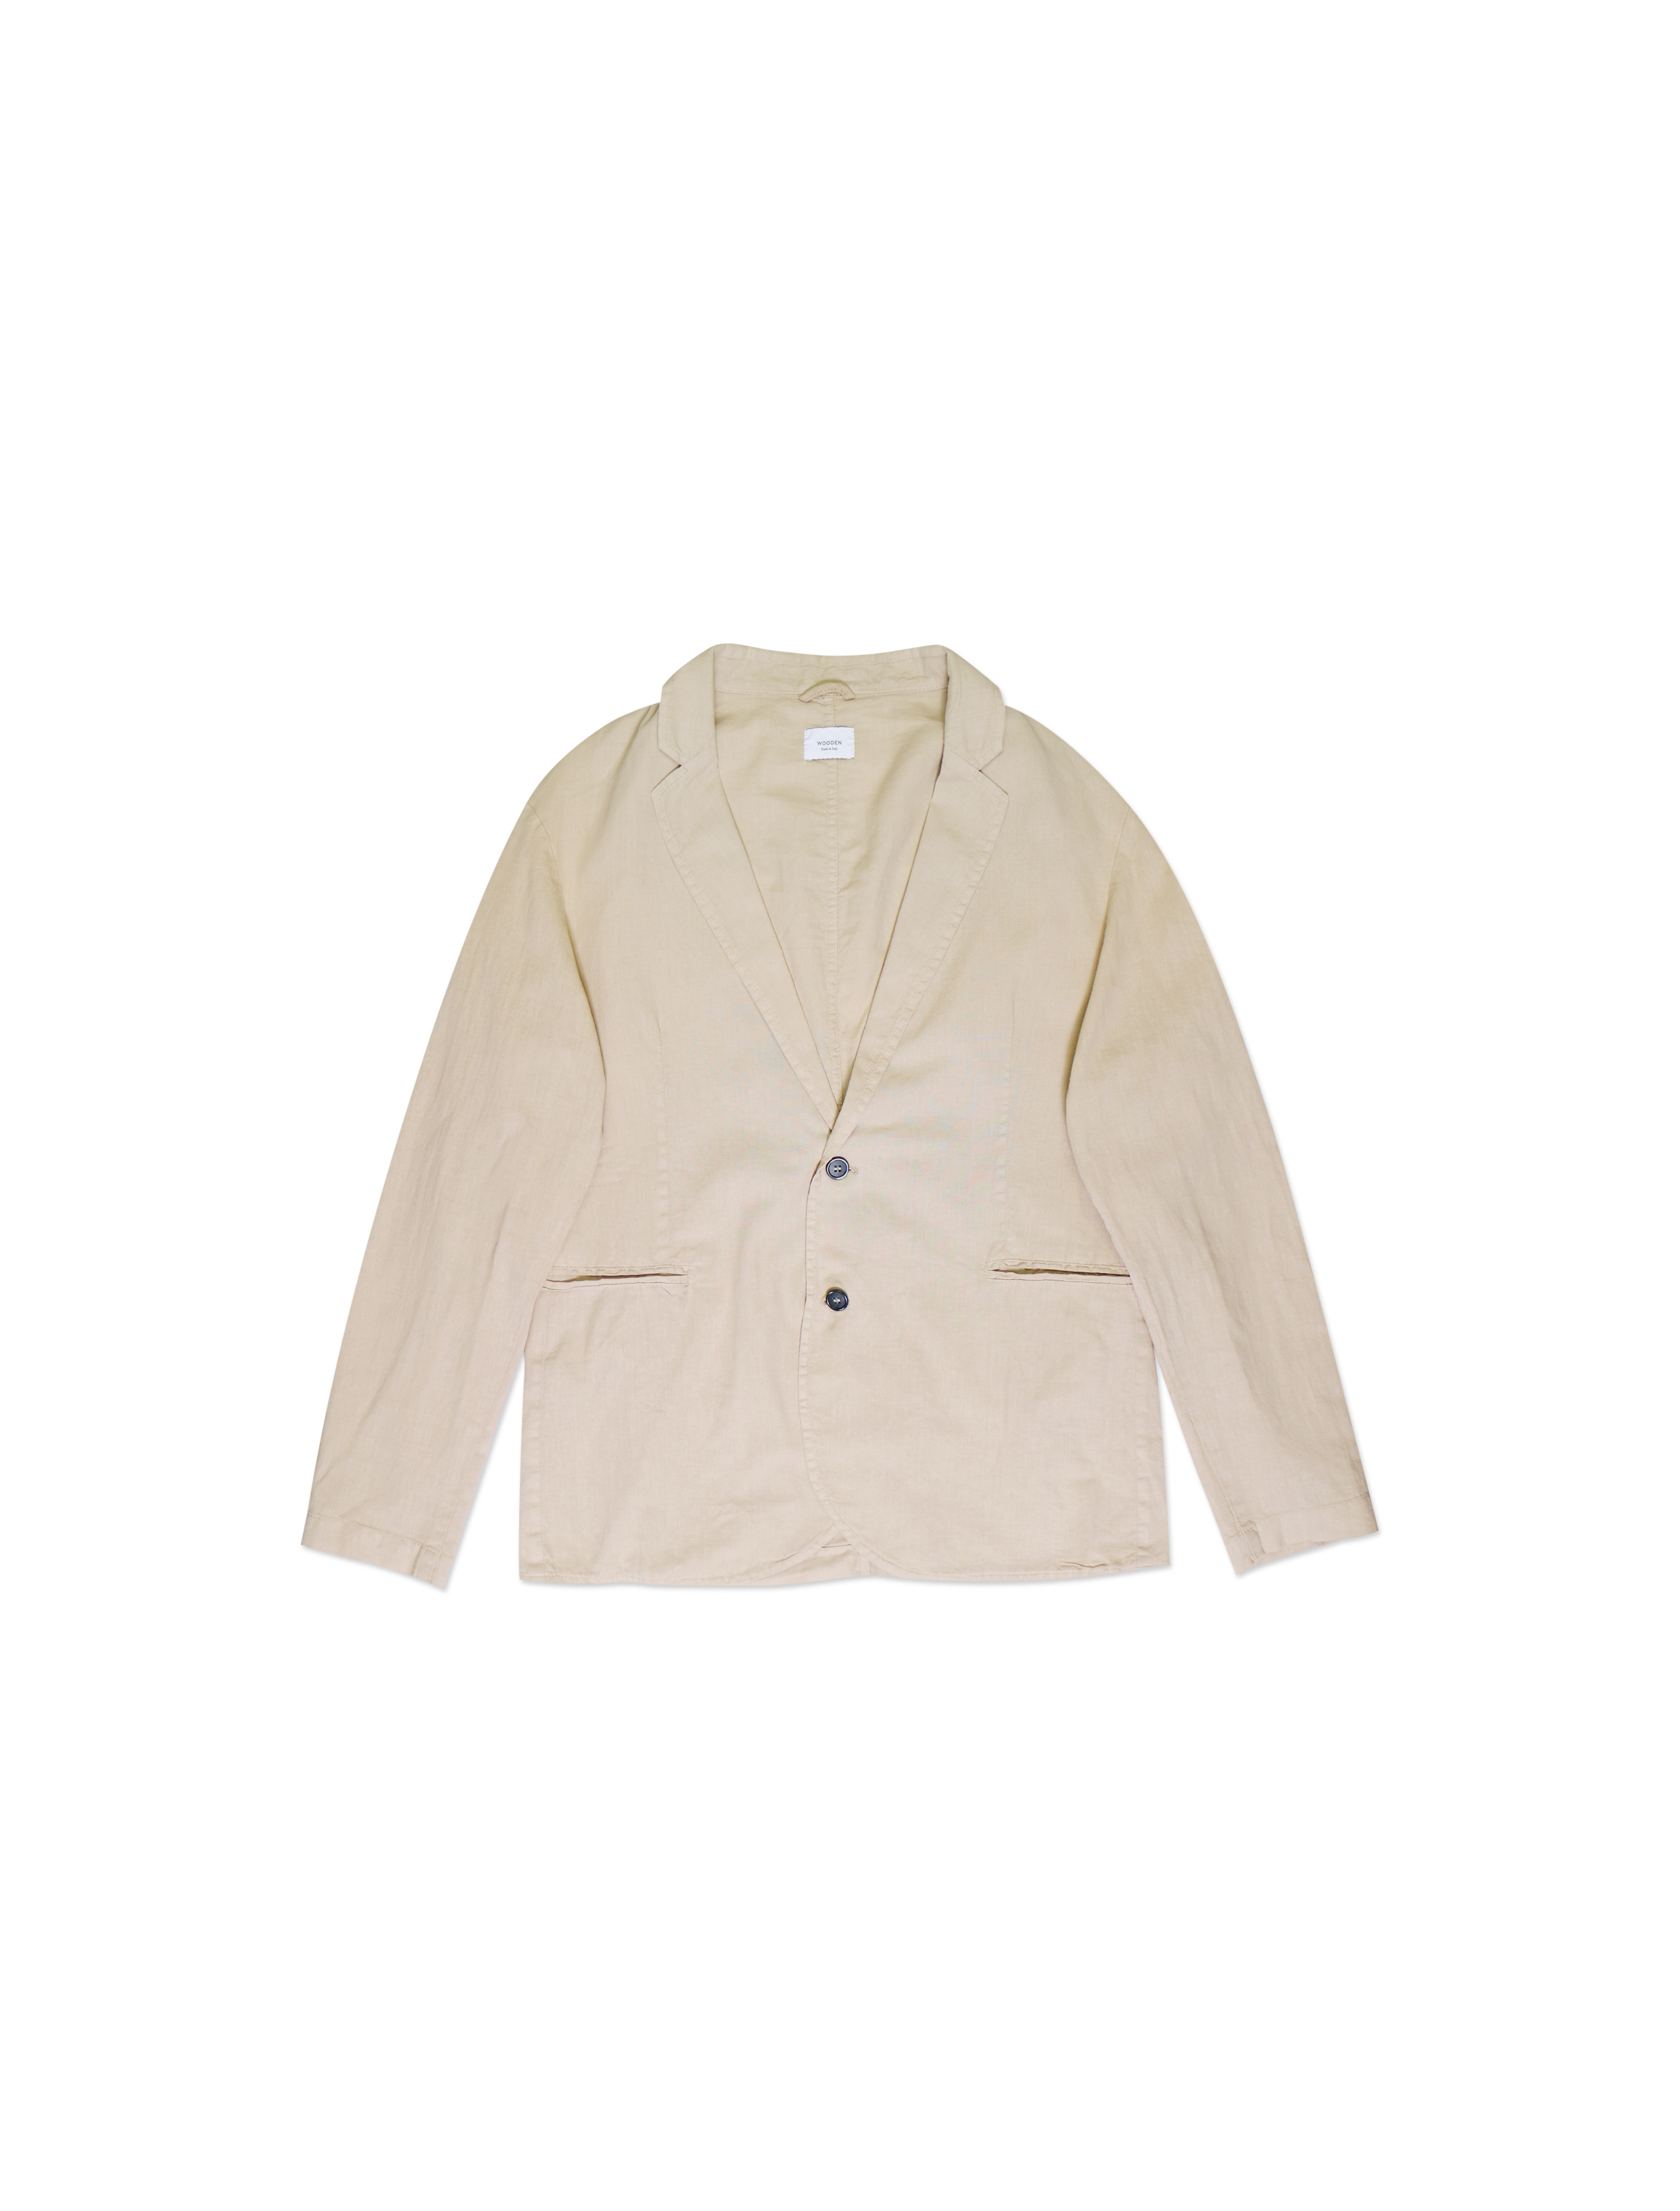 Giacca Beige   Wooden Store